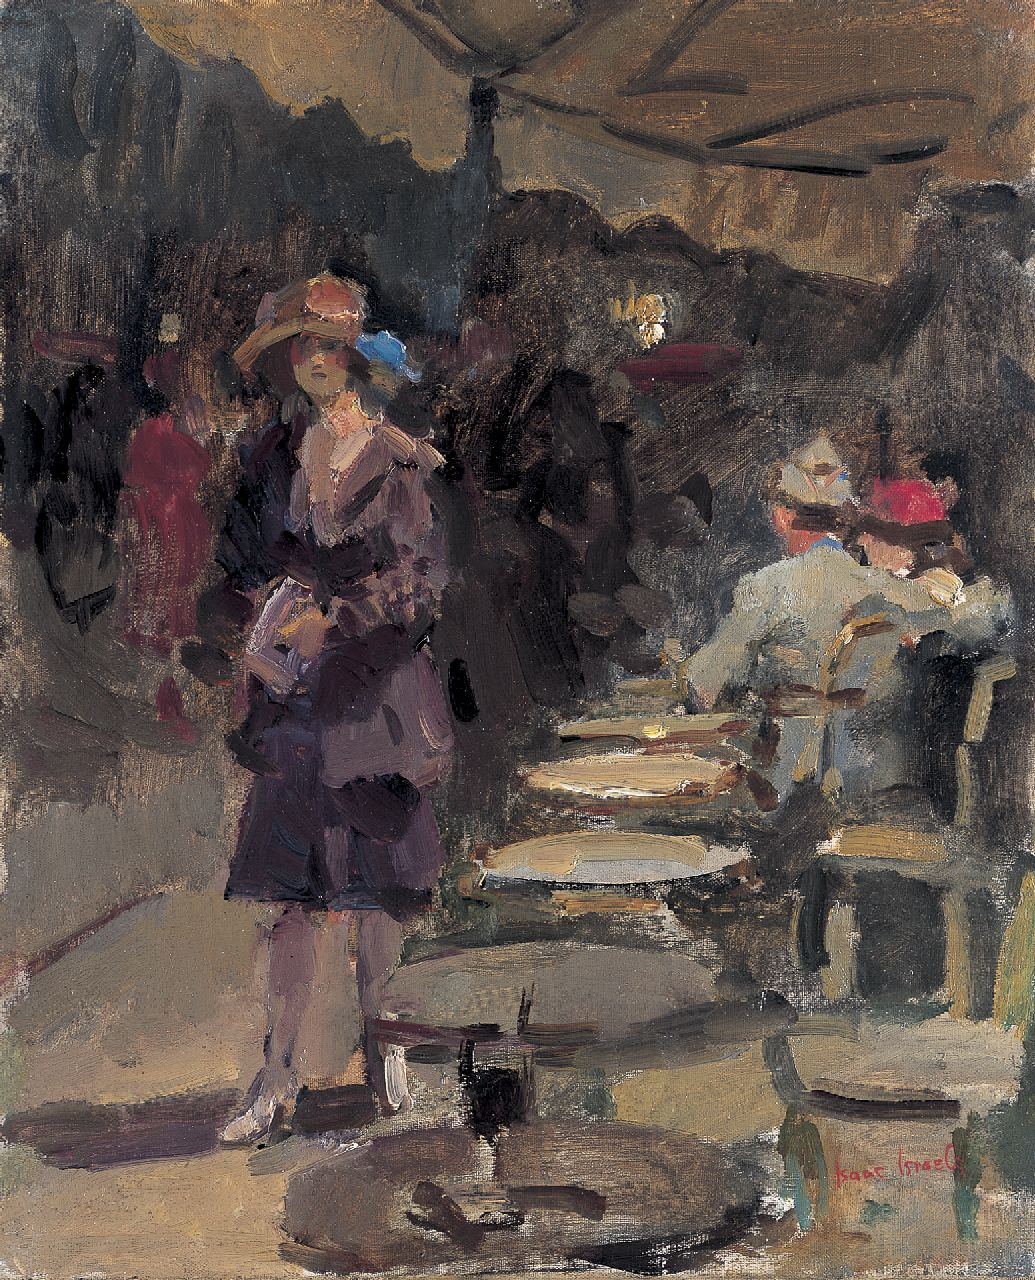 Israels I.L.  | 'Isaac' Lazarus Israels, Outdoor café, oil on canvas 46.0 x 38.2 cm, signed l.r.